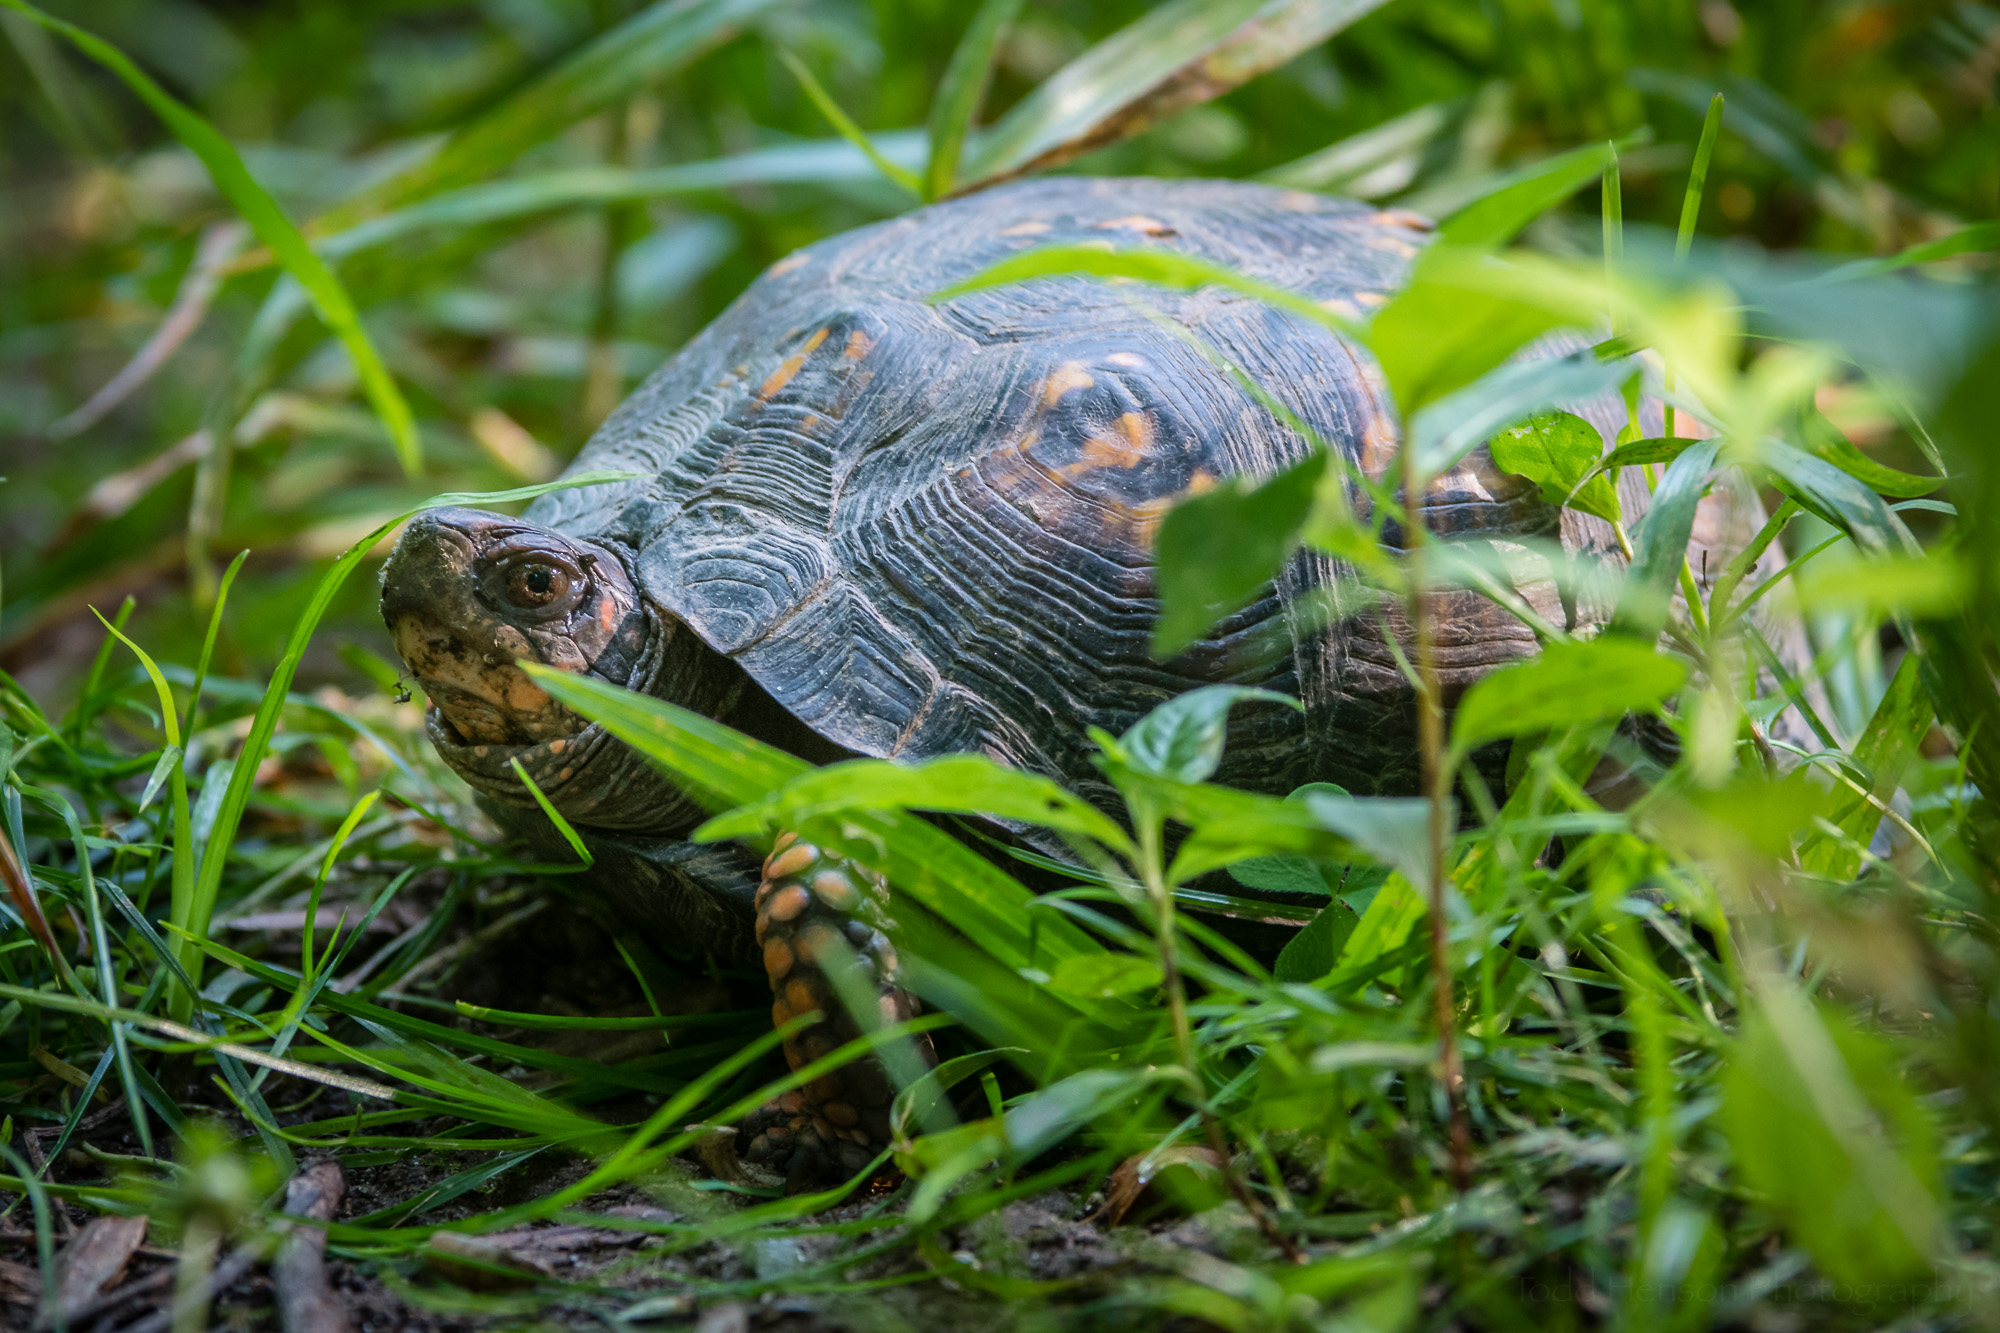 Eastern Box Turtle in the grass.